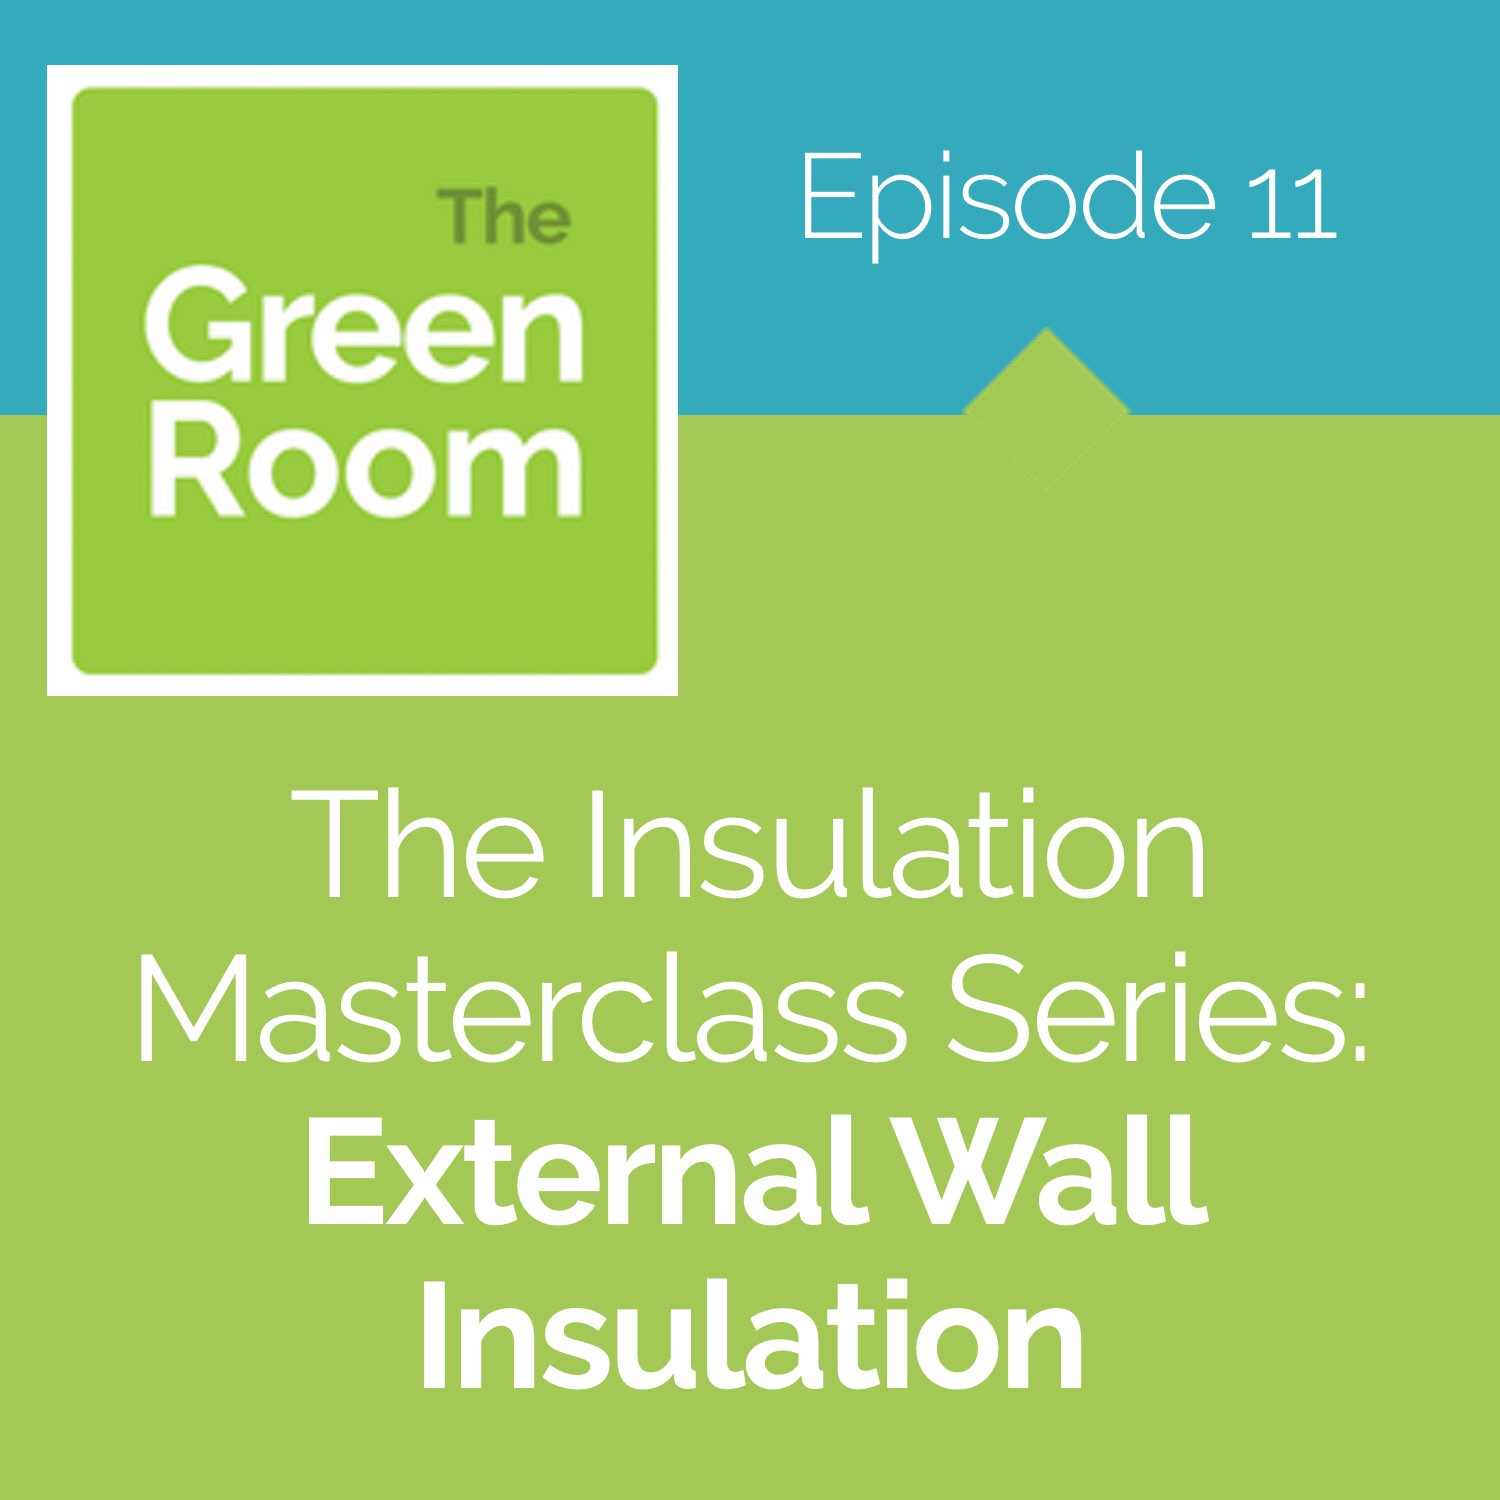 The Insulation Masterclass Series: External Wall Insulation